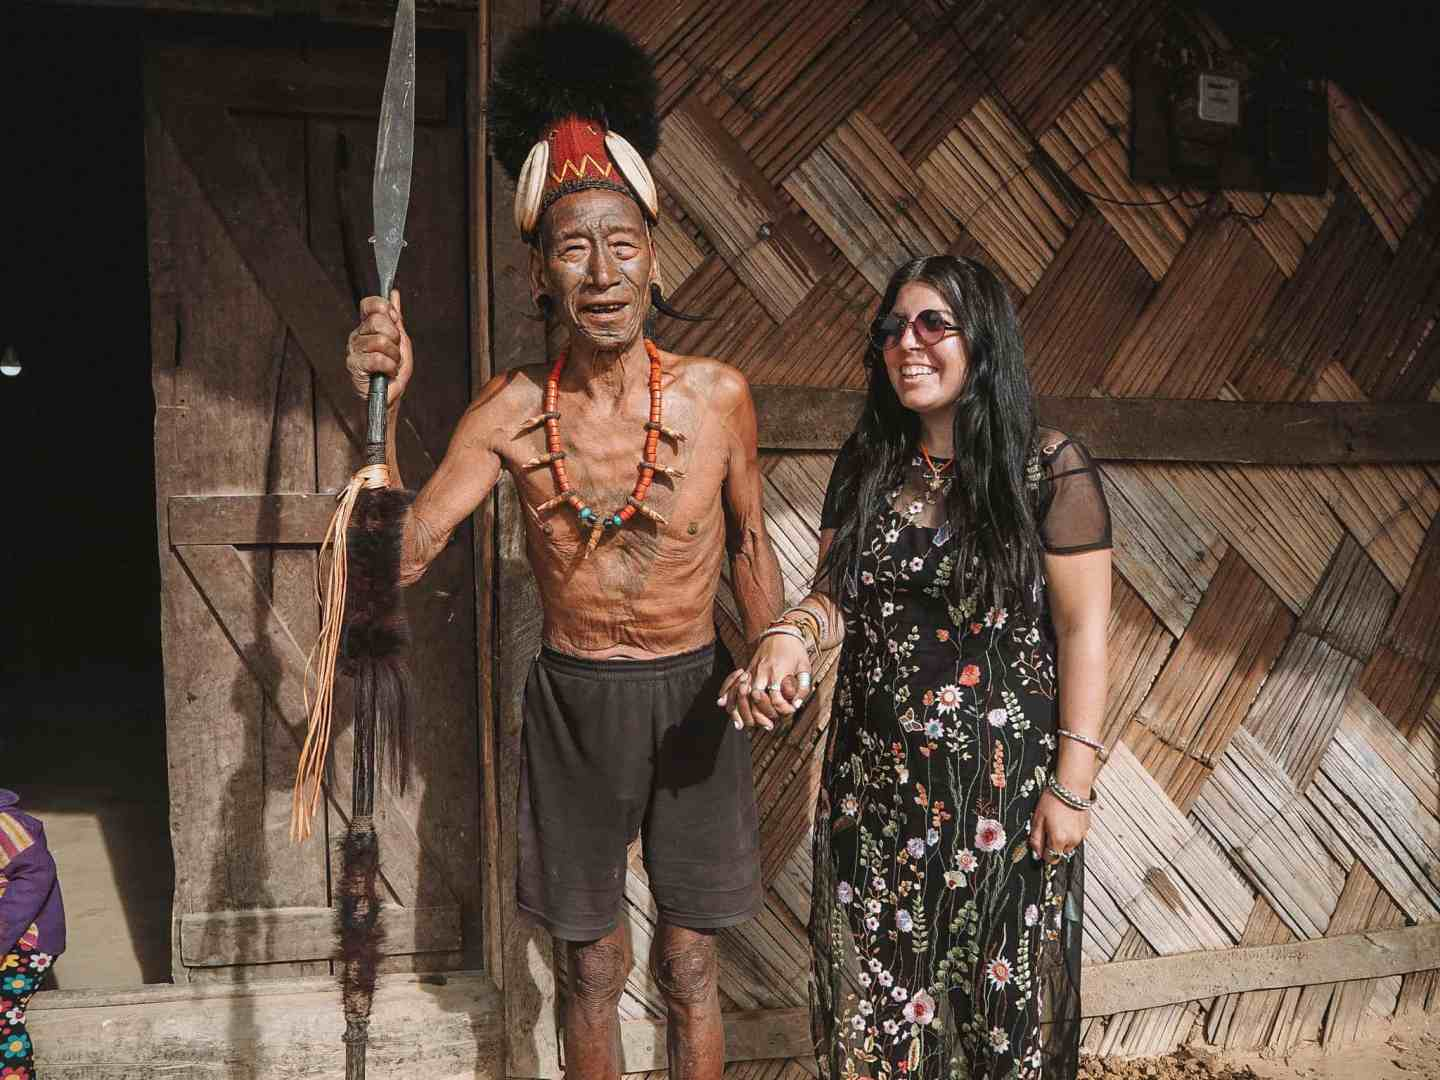 20 MIND BLOWING PHOTOS THAT WILL MAKE YOU WANT TO VISIT NAGALAND IN INDIA